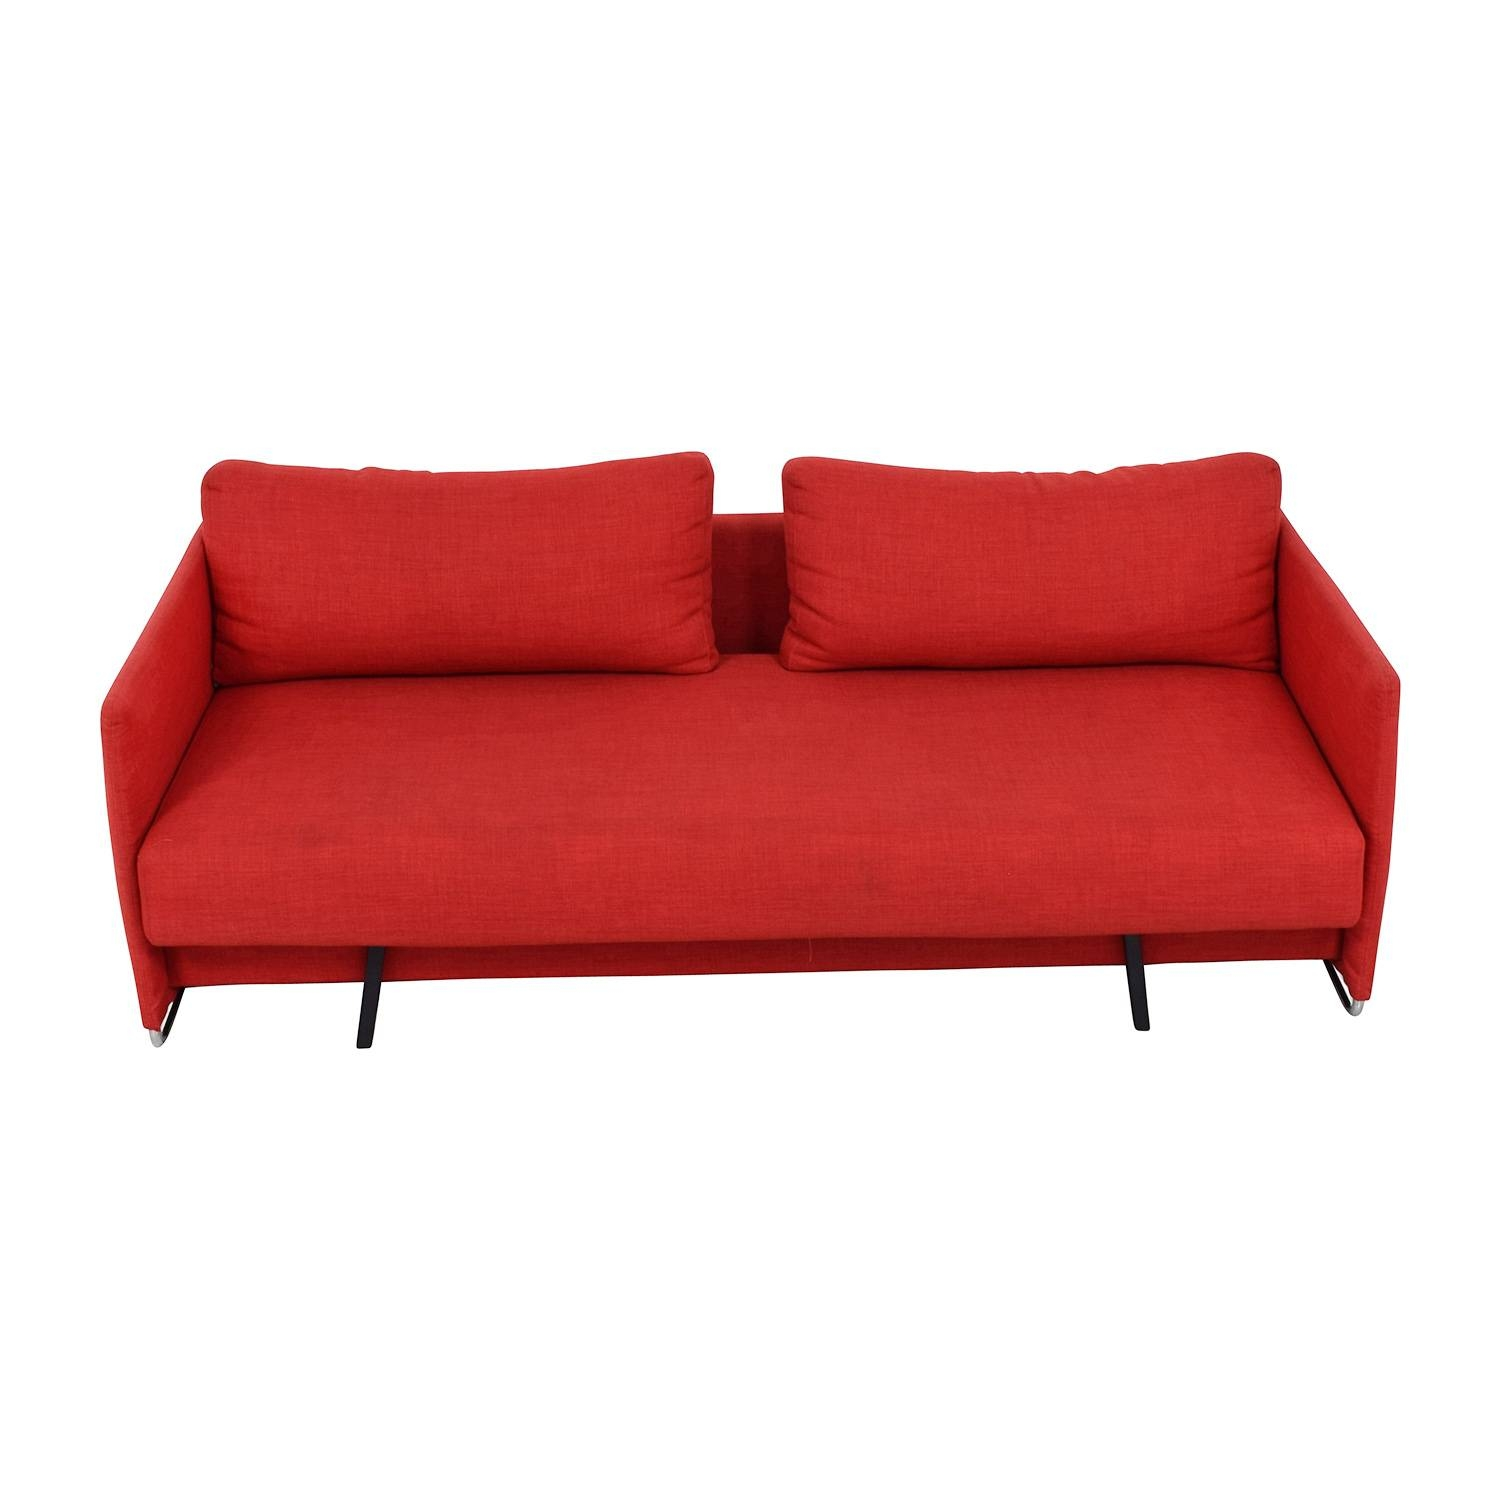 63% Off - Cb2 Cb2 Tandom Red Sleeper Sofa / Sofas within Red Sleeper Sofa (Image 1 of 30)